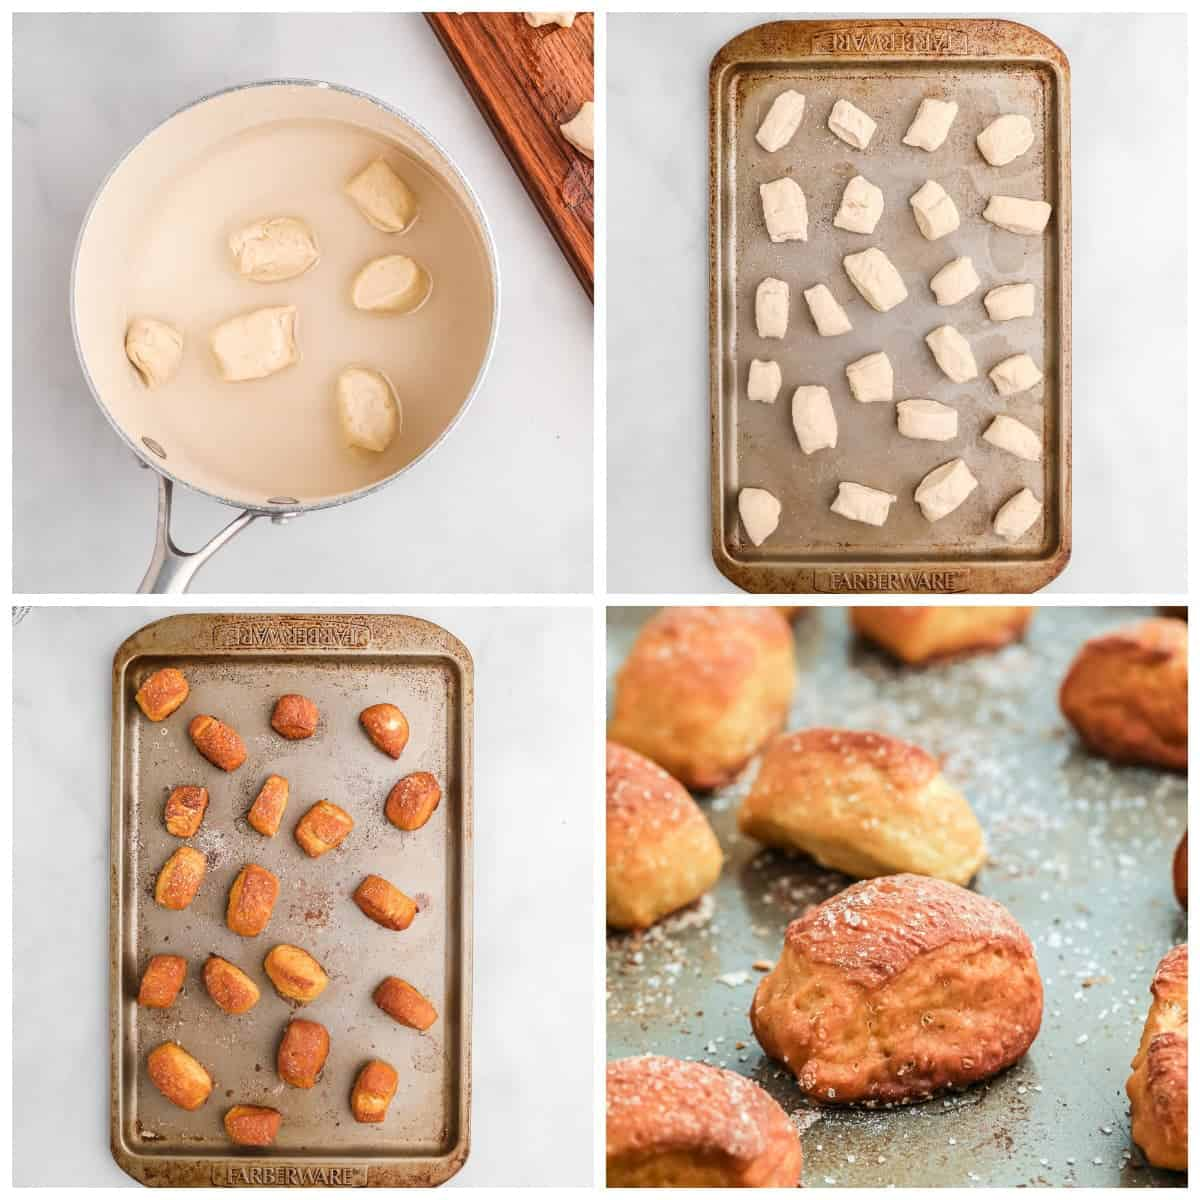 Four process photos. First one, pretzel bites soaking in baking soda water. Second one, pretzel bites placed on a baking sheet. Third one, pretzel bites baked and out of the oven. Fourth one, close up photo of pretzel bites on a baking sheet.